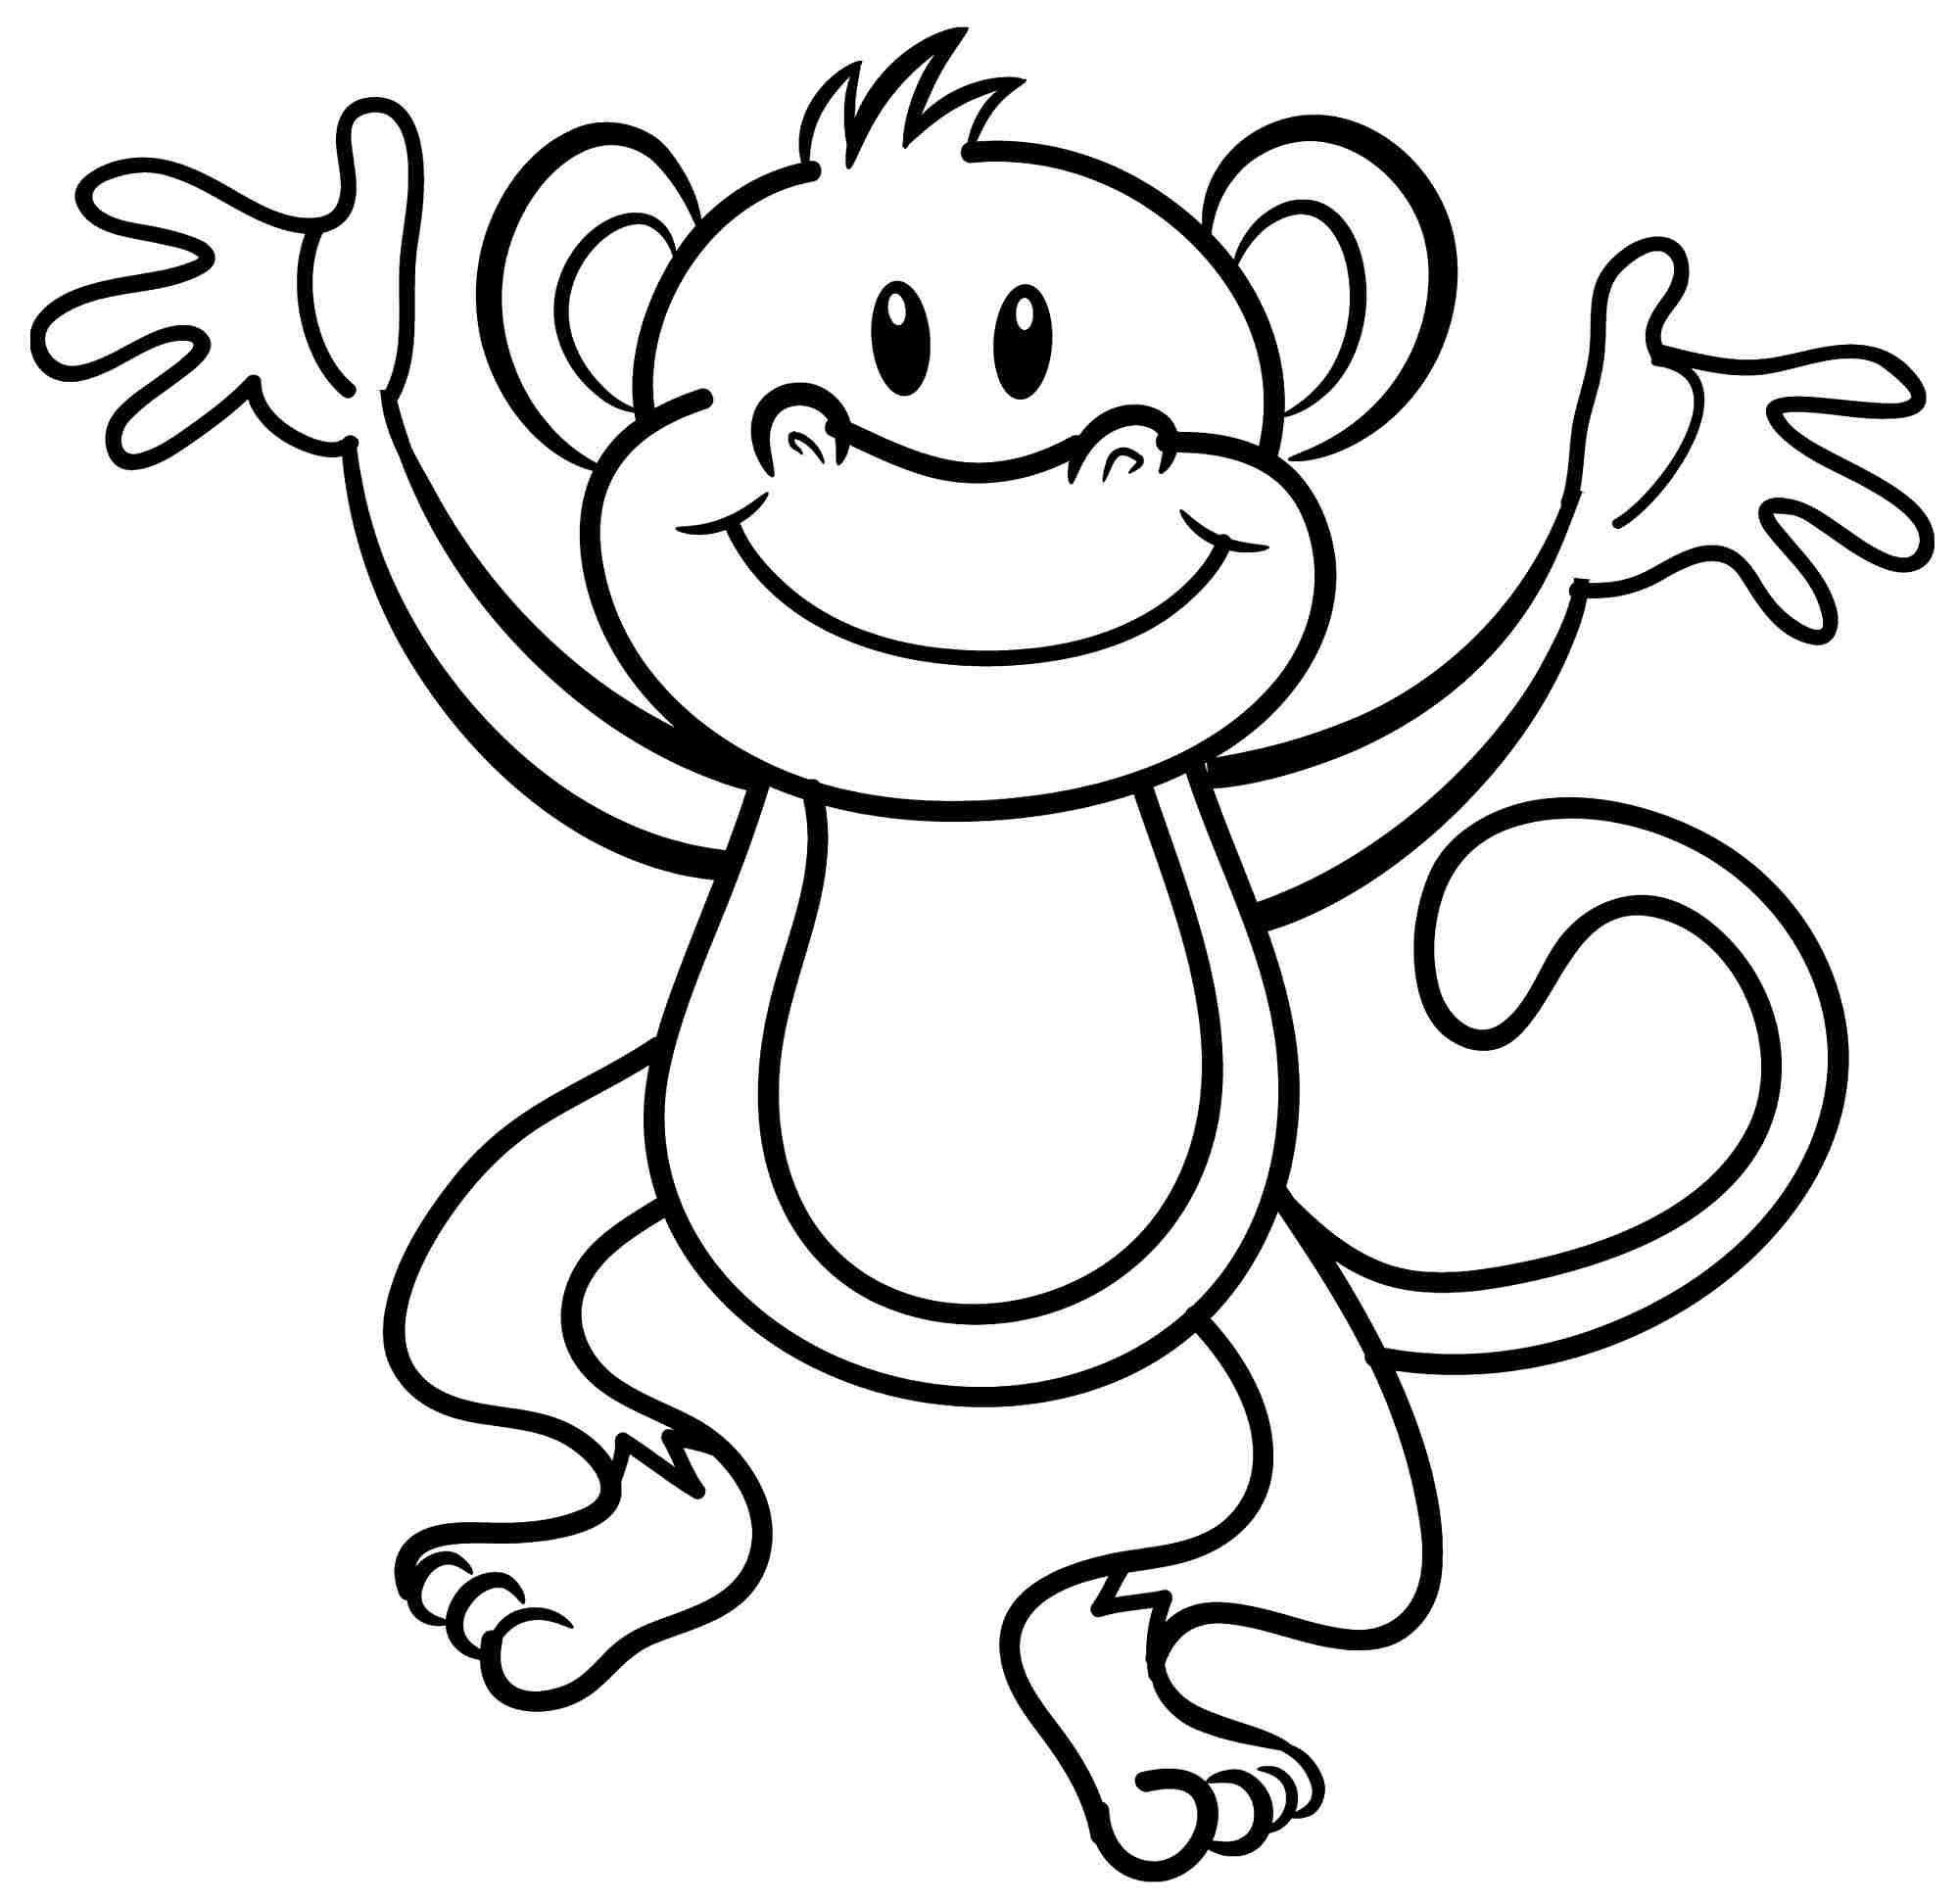 free coloring pages animals image 46 for kids - Free Coloring Page Printables